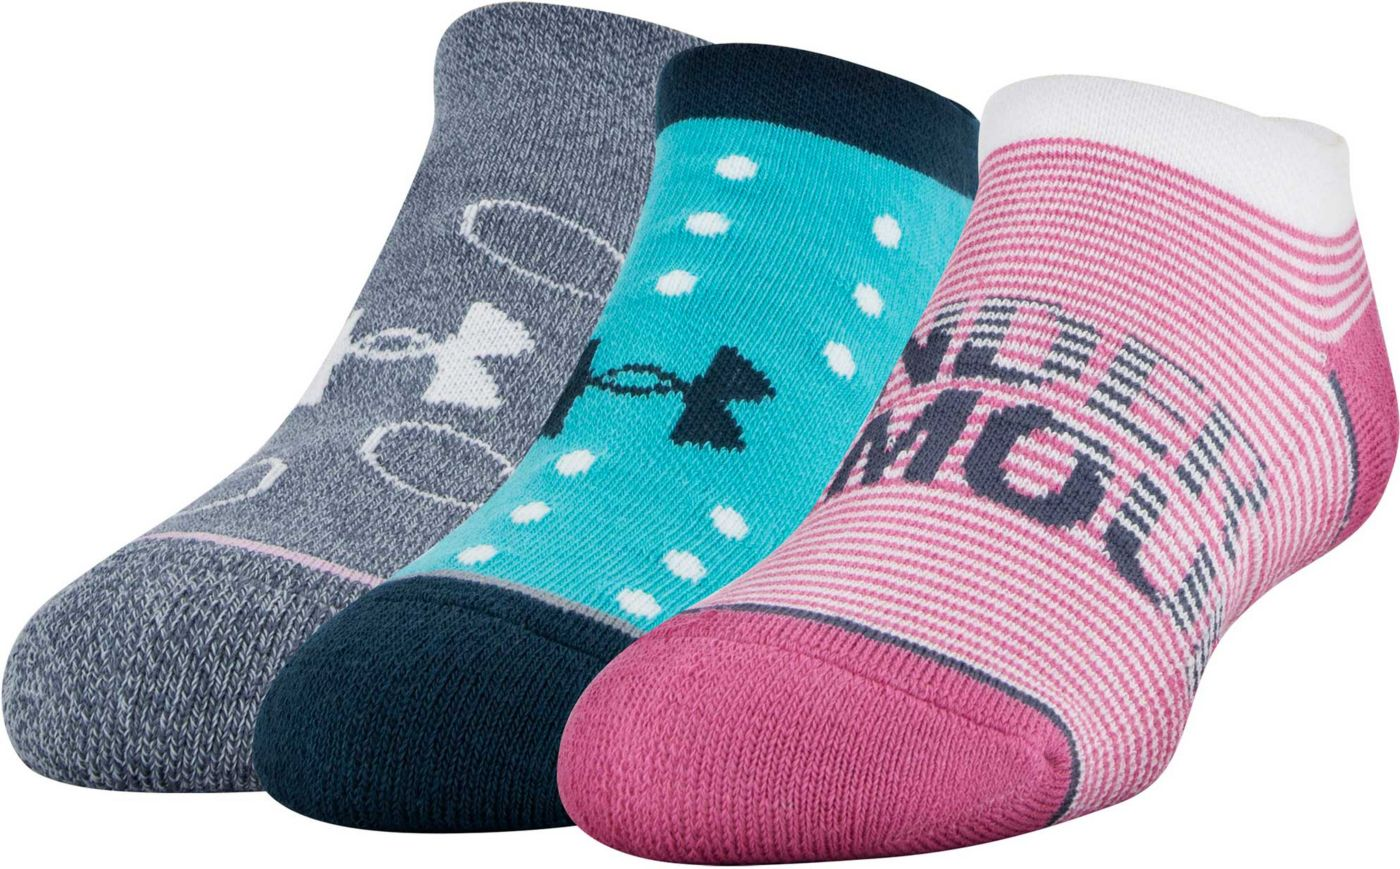 Under Armour Youth Phenom No Show Socks - 3 Pack